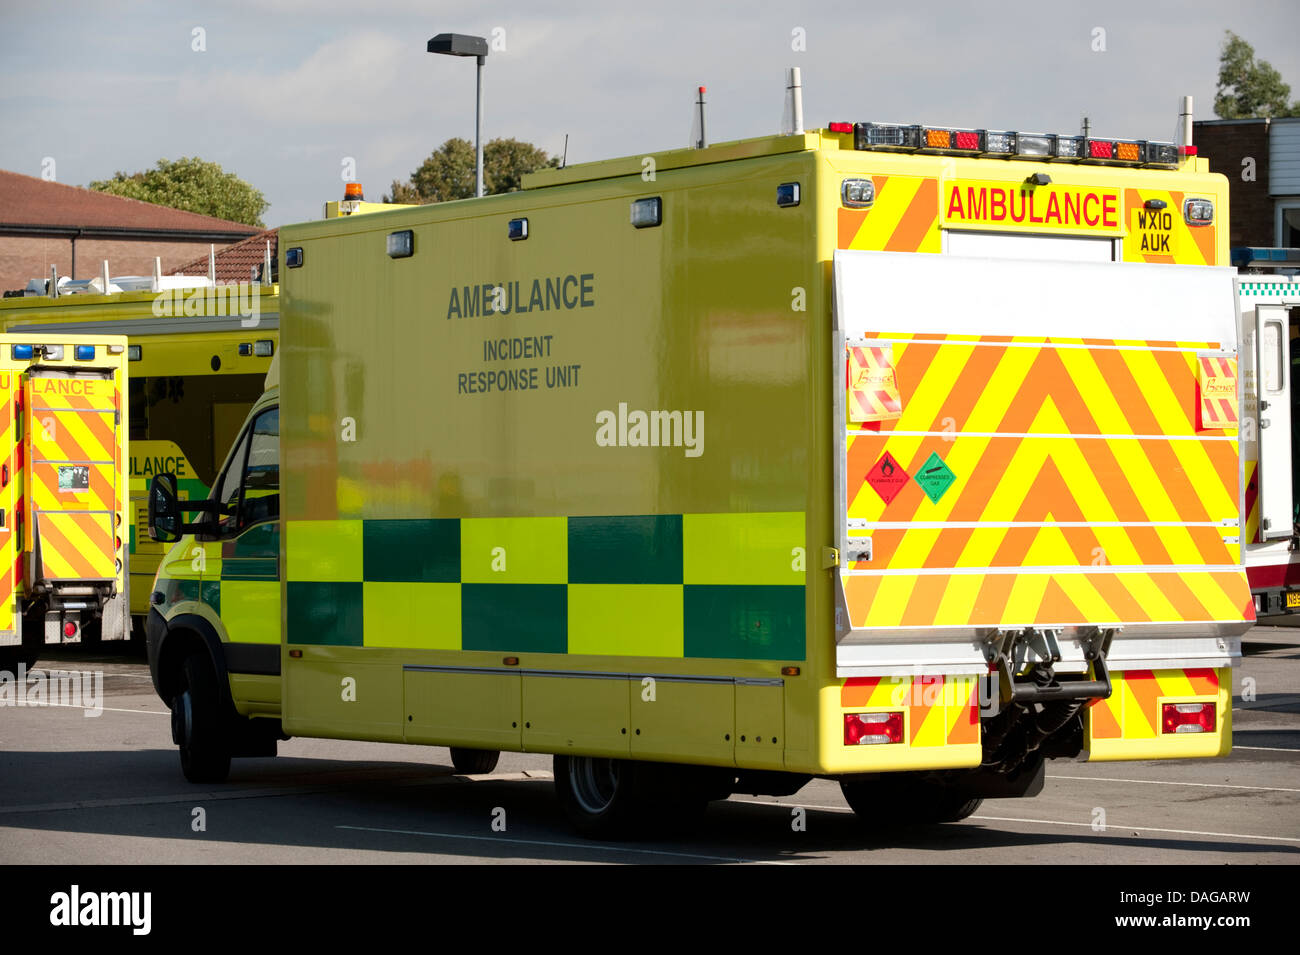 Ambulance Paramedic Incident Response Unit - Stock Image